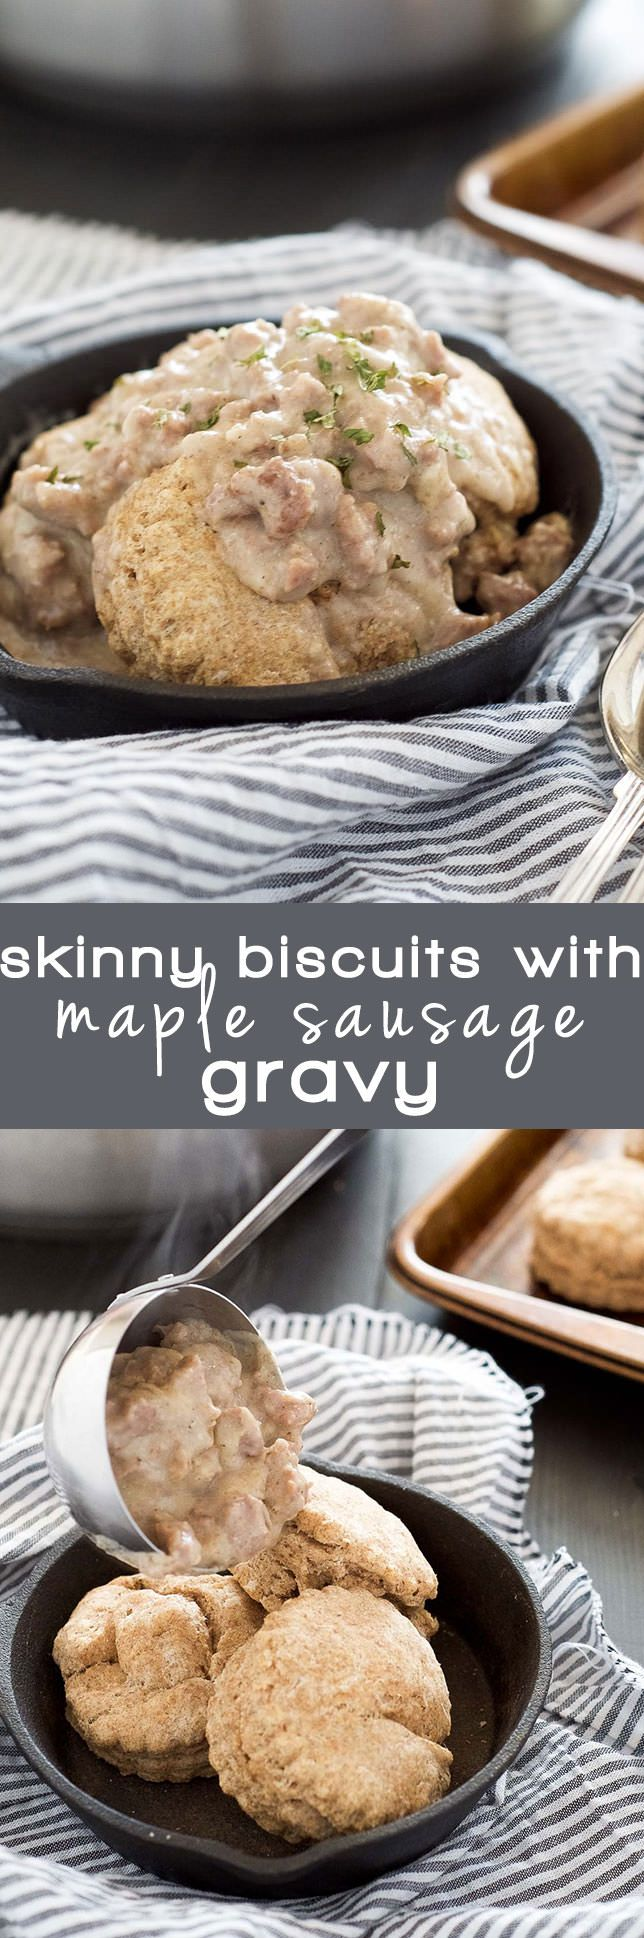 Skinny Biscuits and Gravy with Maple Sausage Gravy is a brunch favorite that has been lightened up with whole wheat biscuits, turkey sausage and a touch of maple in gravy!